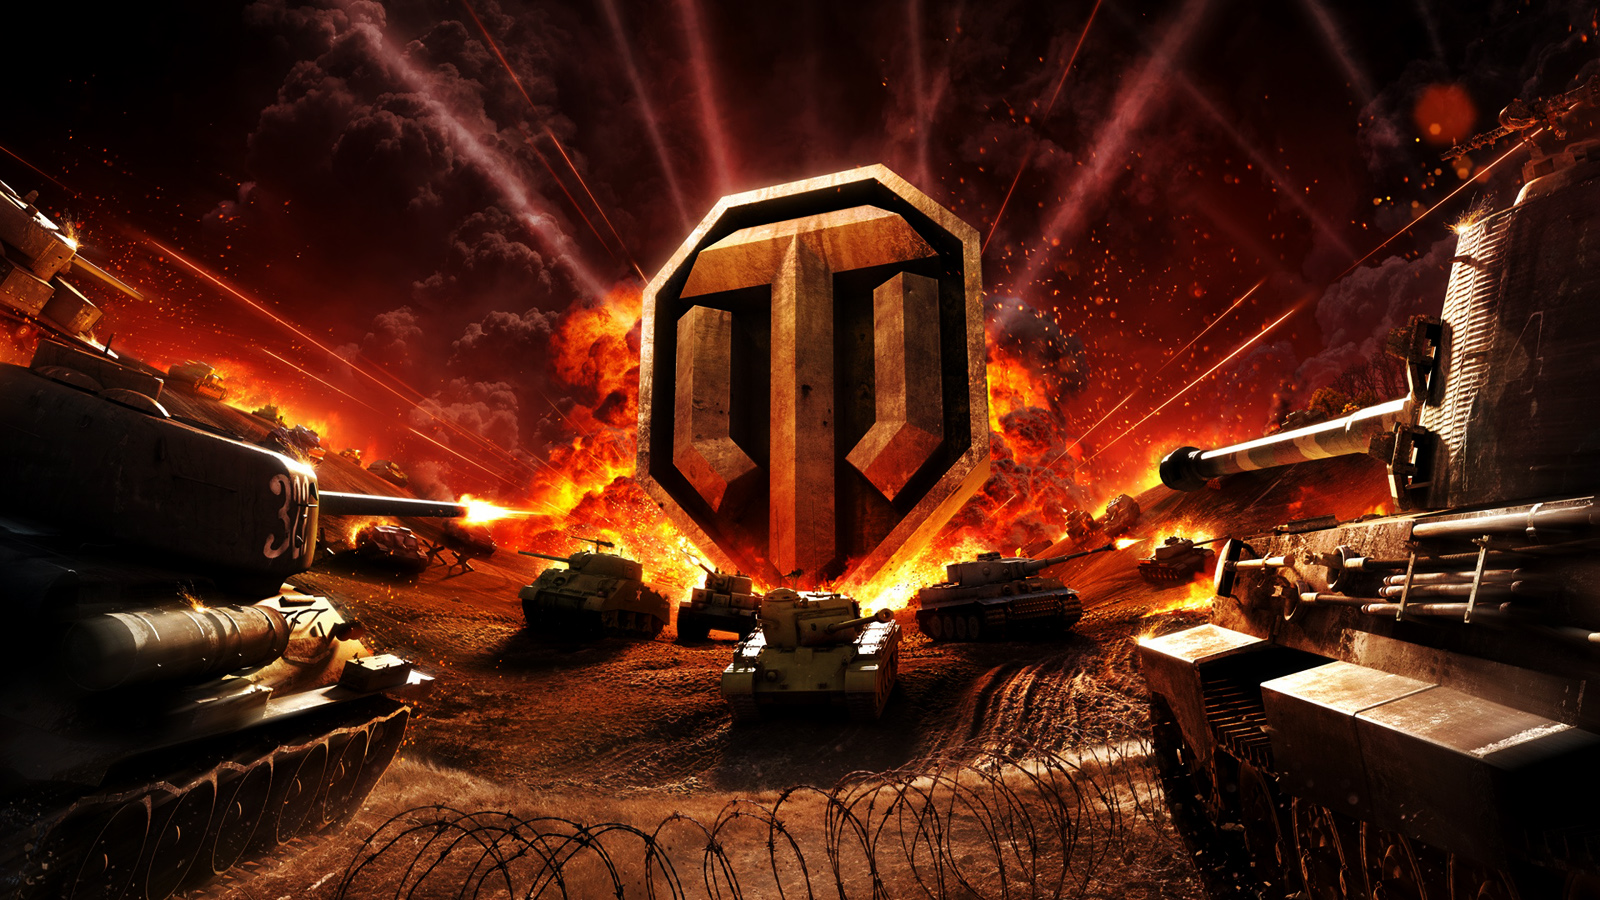 http://1.bp.blogspot.com/-p9RF2c6z3gc/UC_qdgsyTwI/AAAAAAAAD40/hkp1n3Y54IY/s1600/World_of_Tanks_Online_Game_HD_Wallpaper-Vvallpaper.Net.jpg